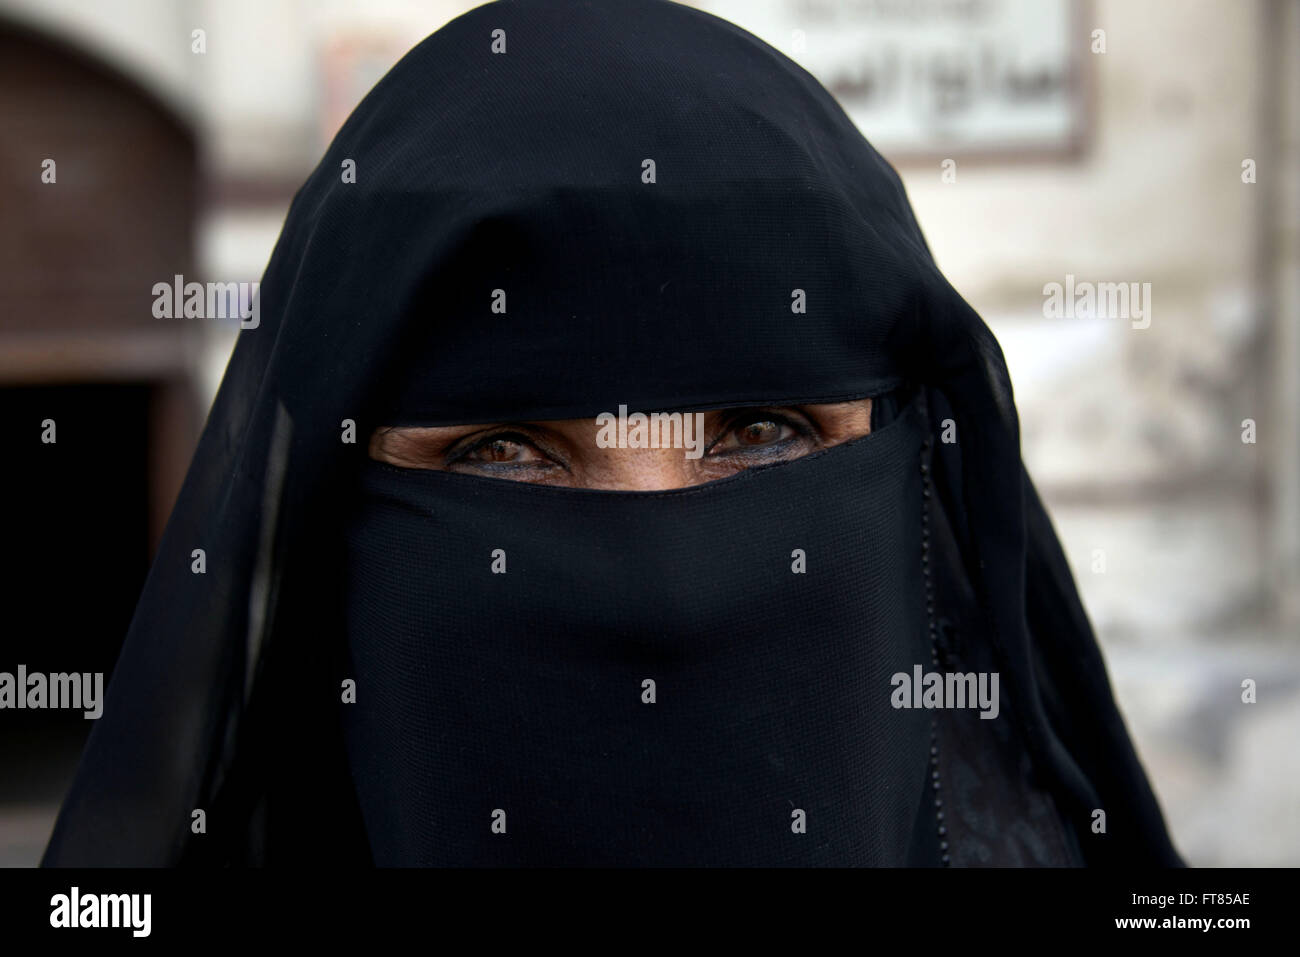 Saudi woman covered with black hijab and closeup of eyes - Stock Image